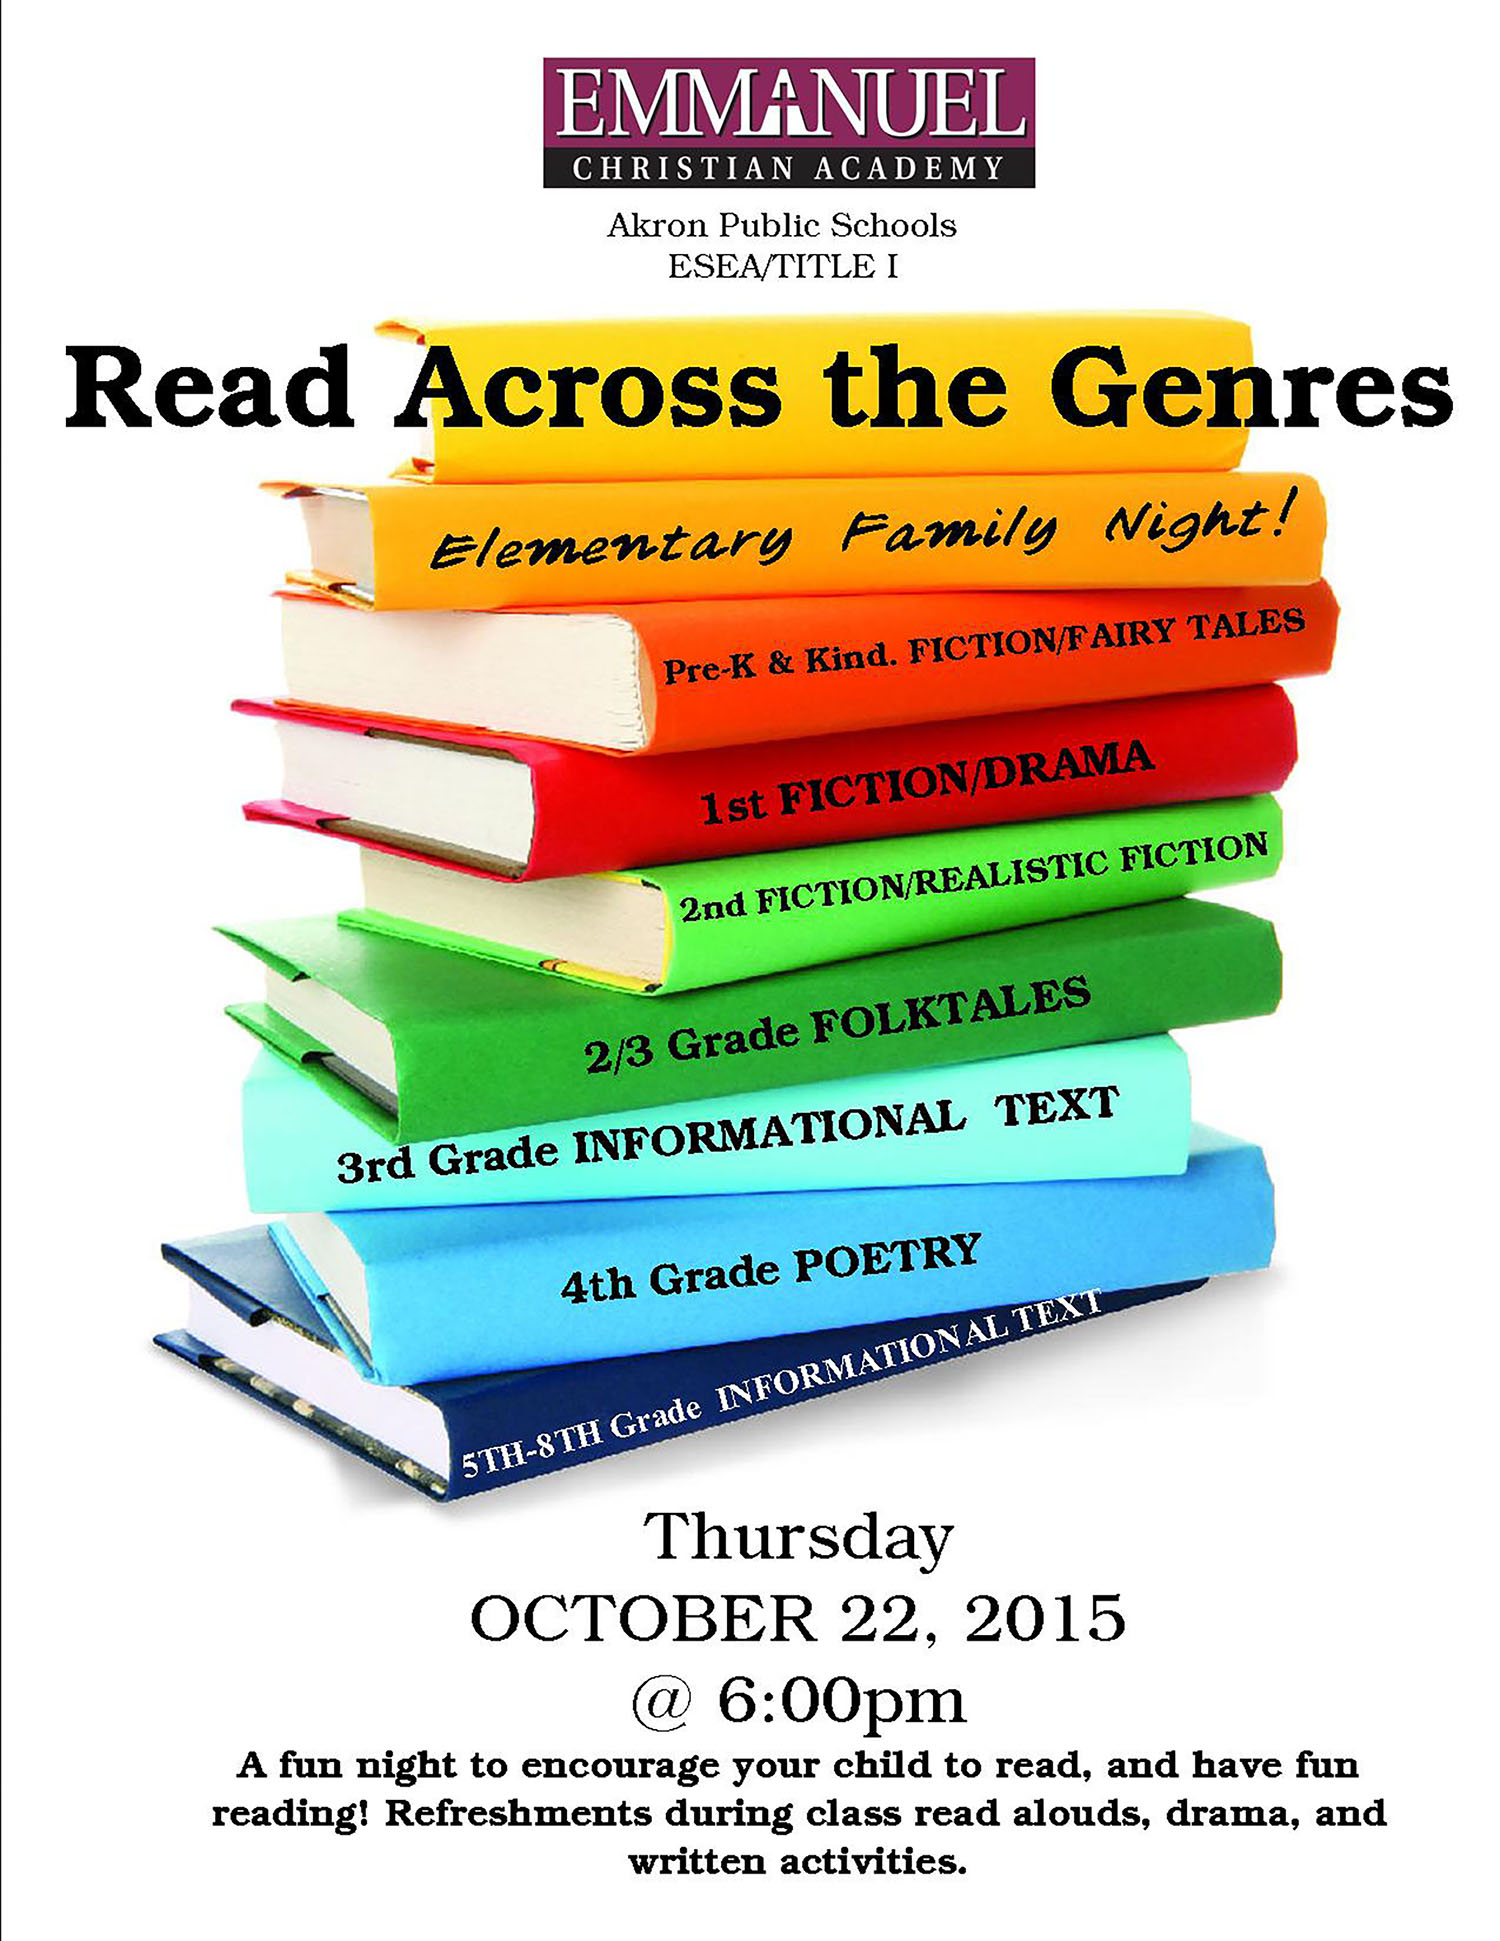 Reading Across the Genres @ Emmanuel Christian Academy